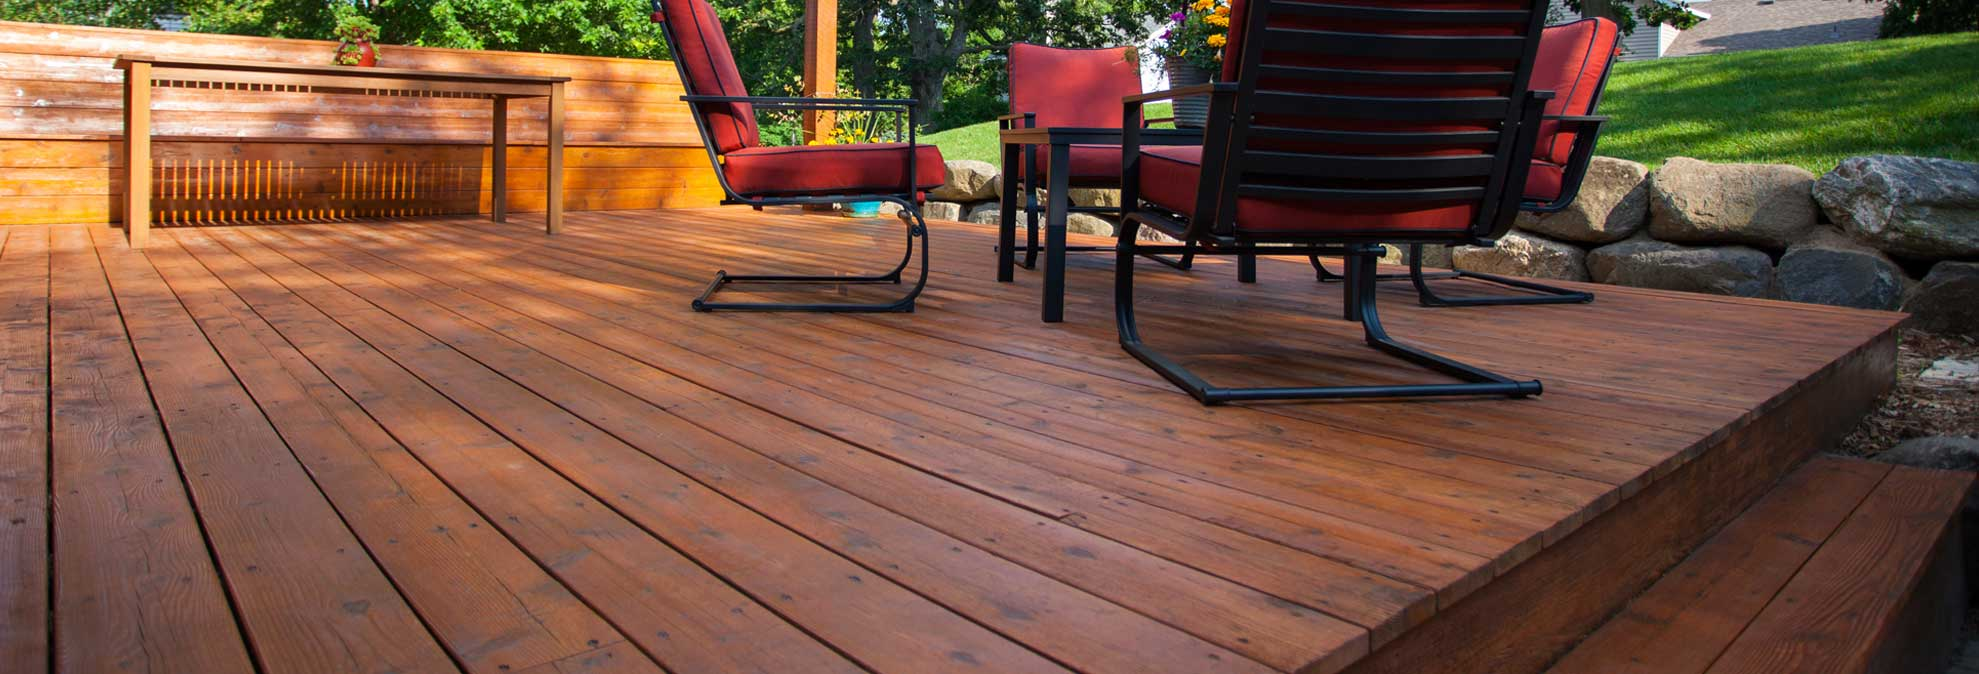 Synthetic Deck Boards Best Decking Buying Guide Consumer Reports